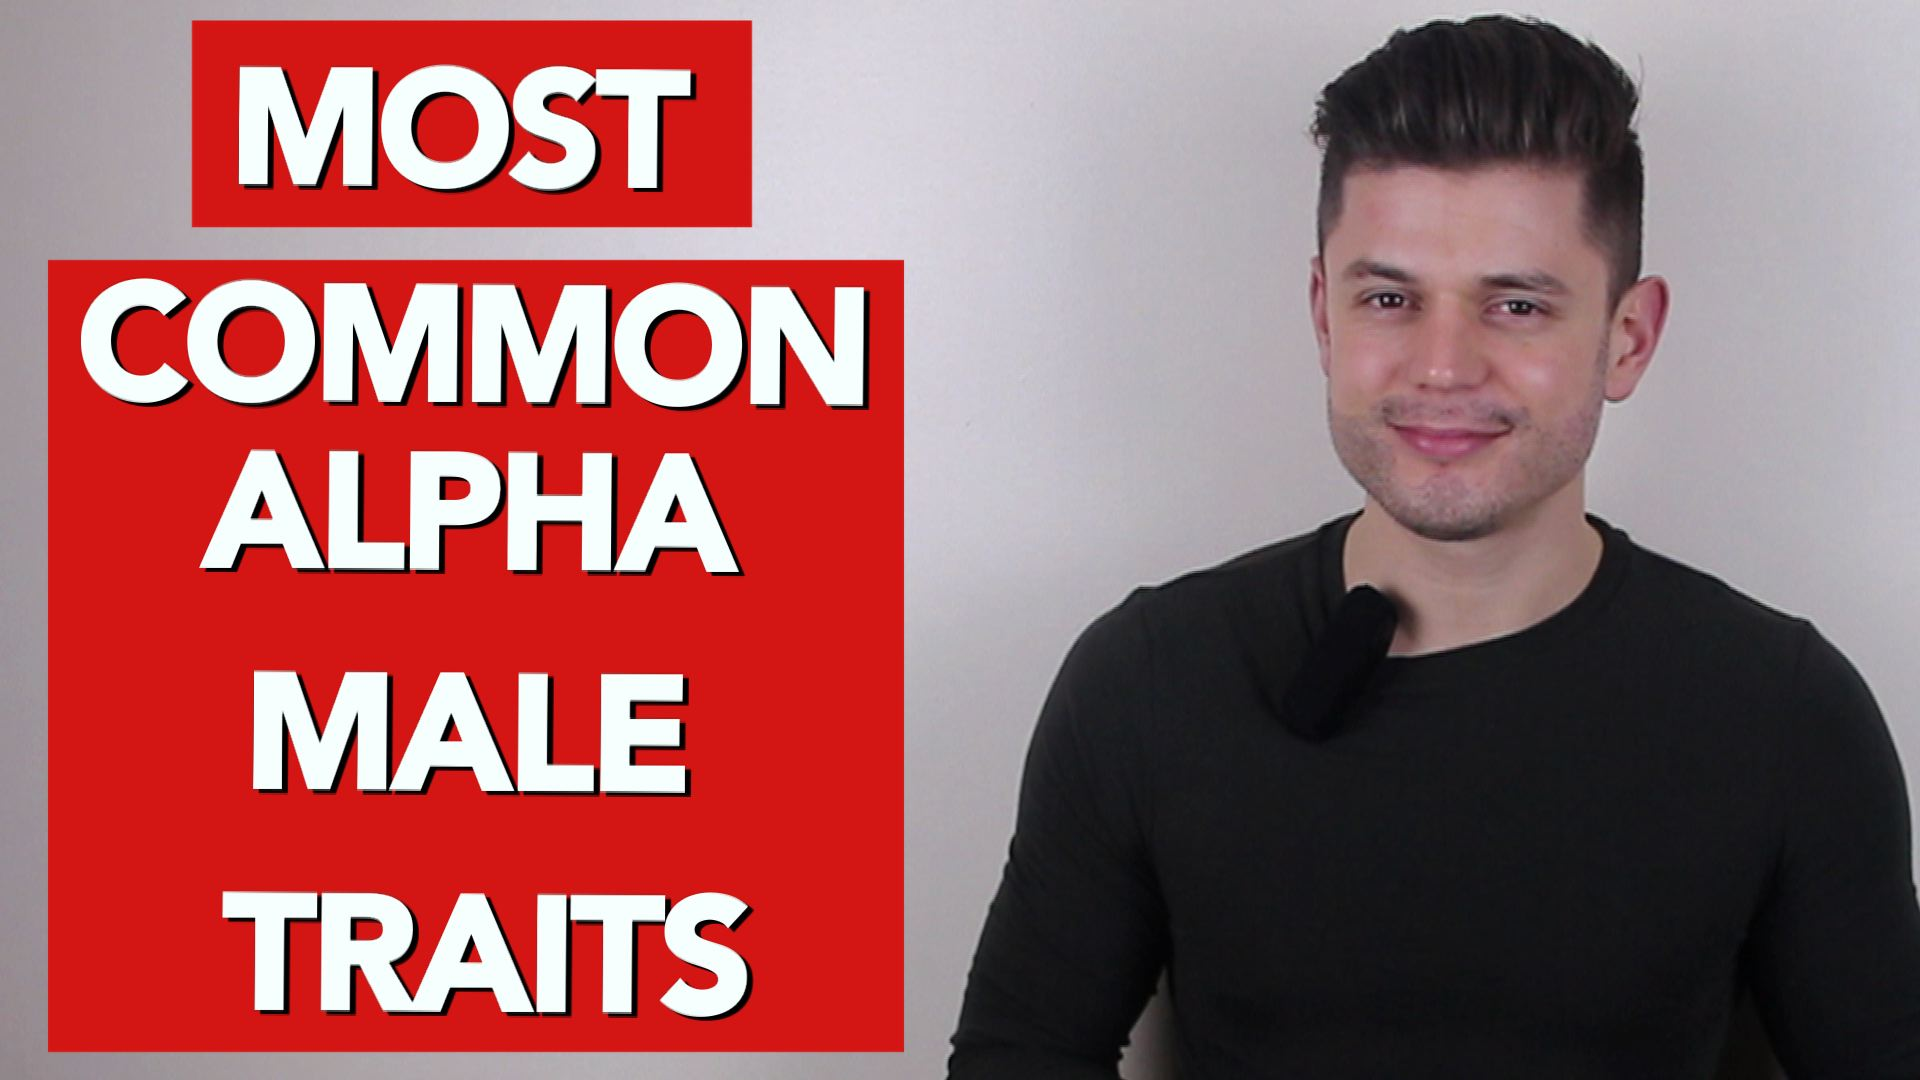 2-the most common alpha male traits